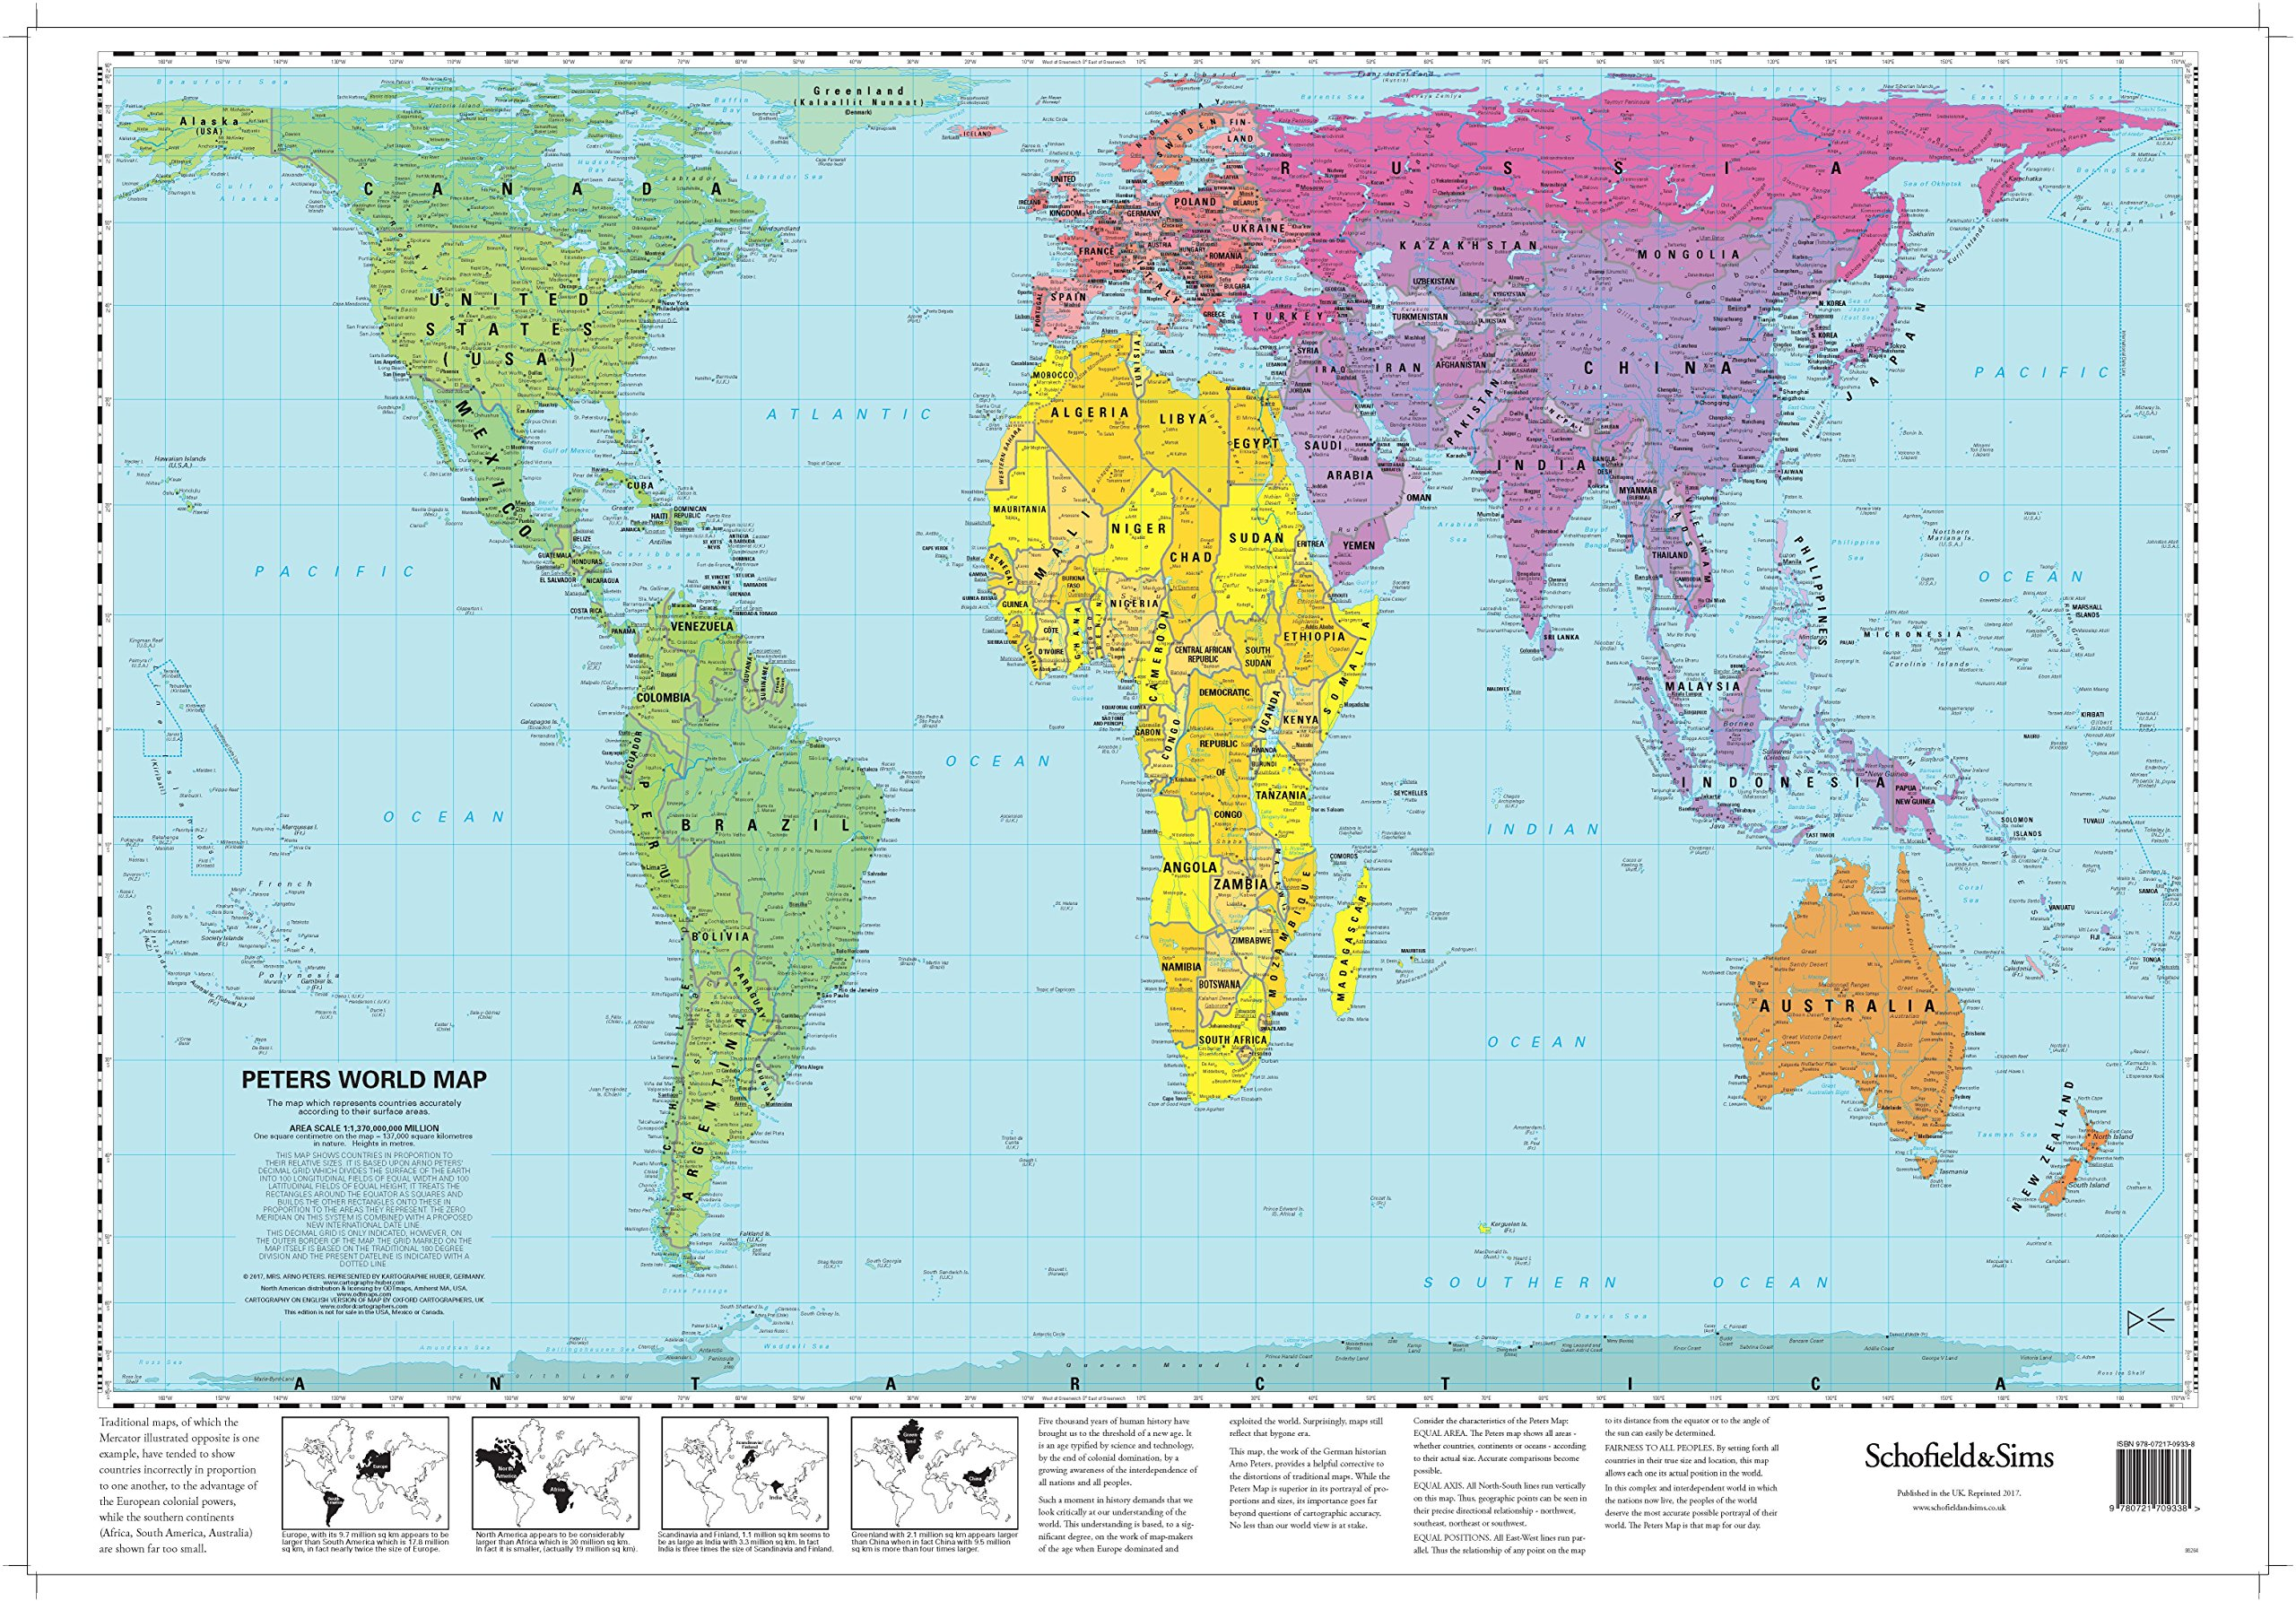 Peters World Map Laminated Poster Schofield Sims